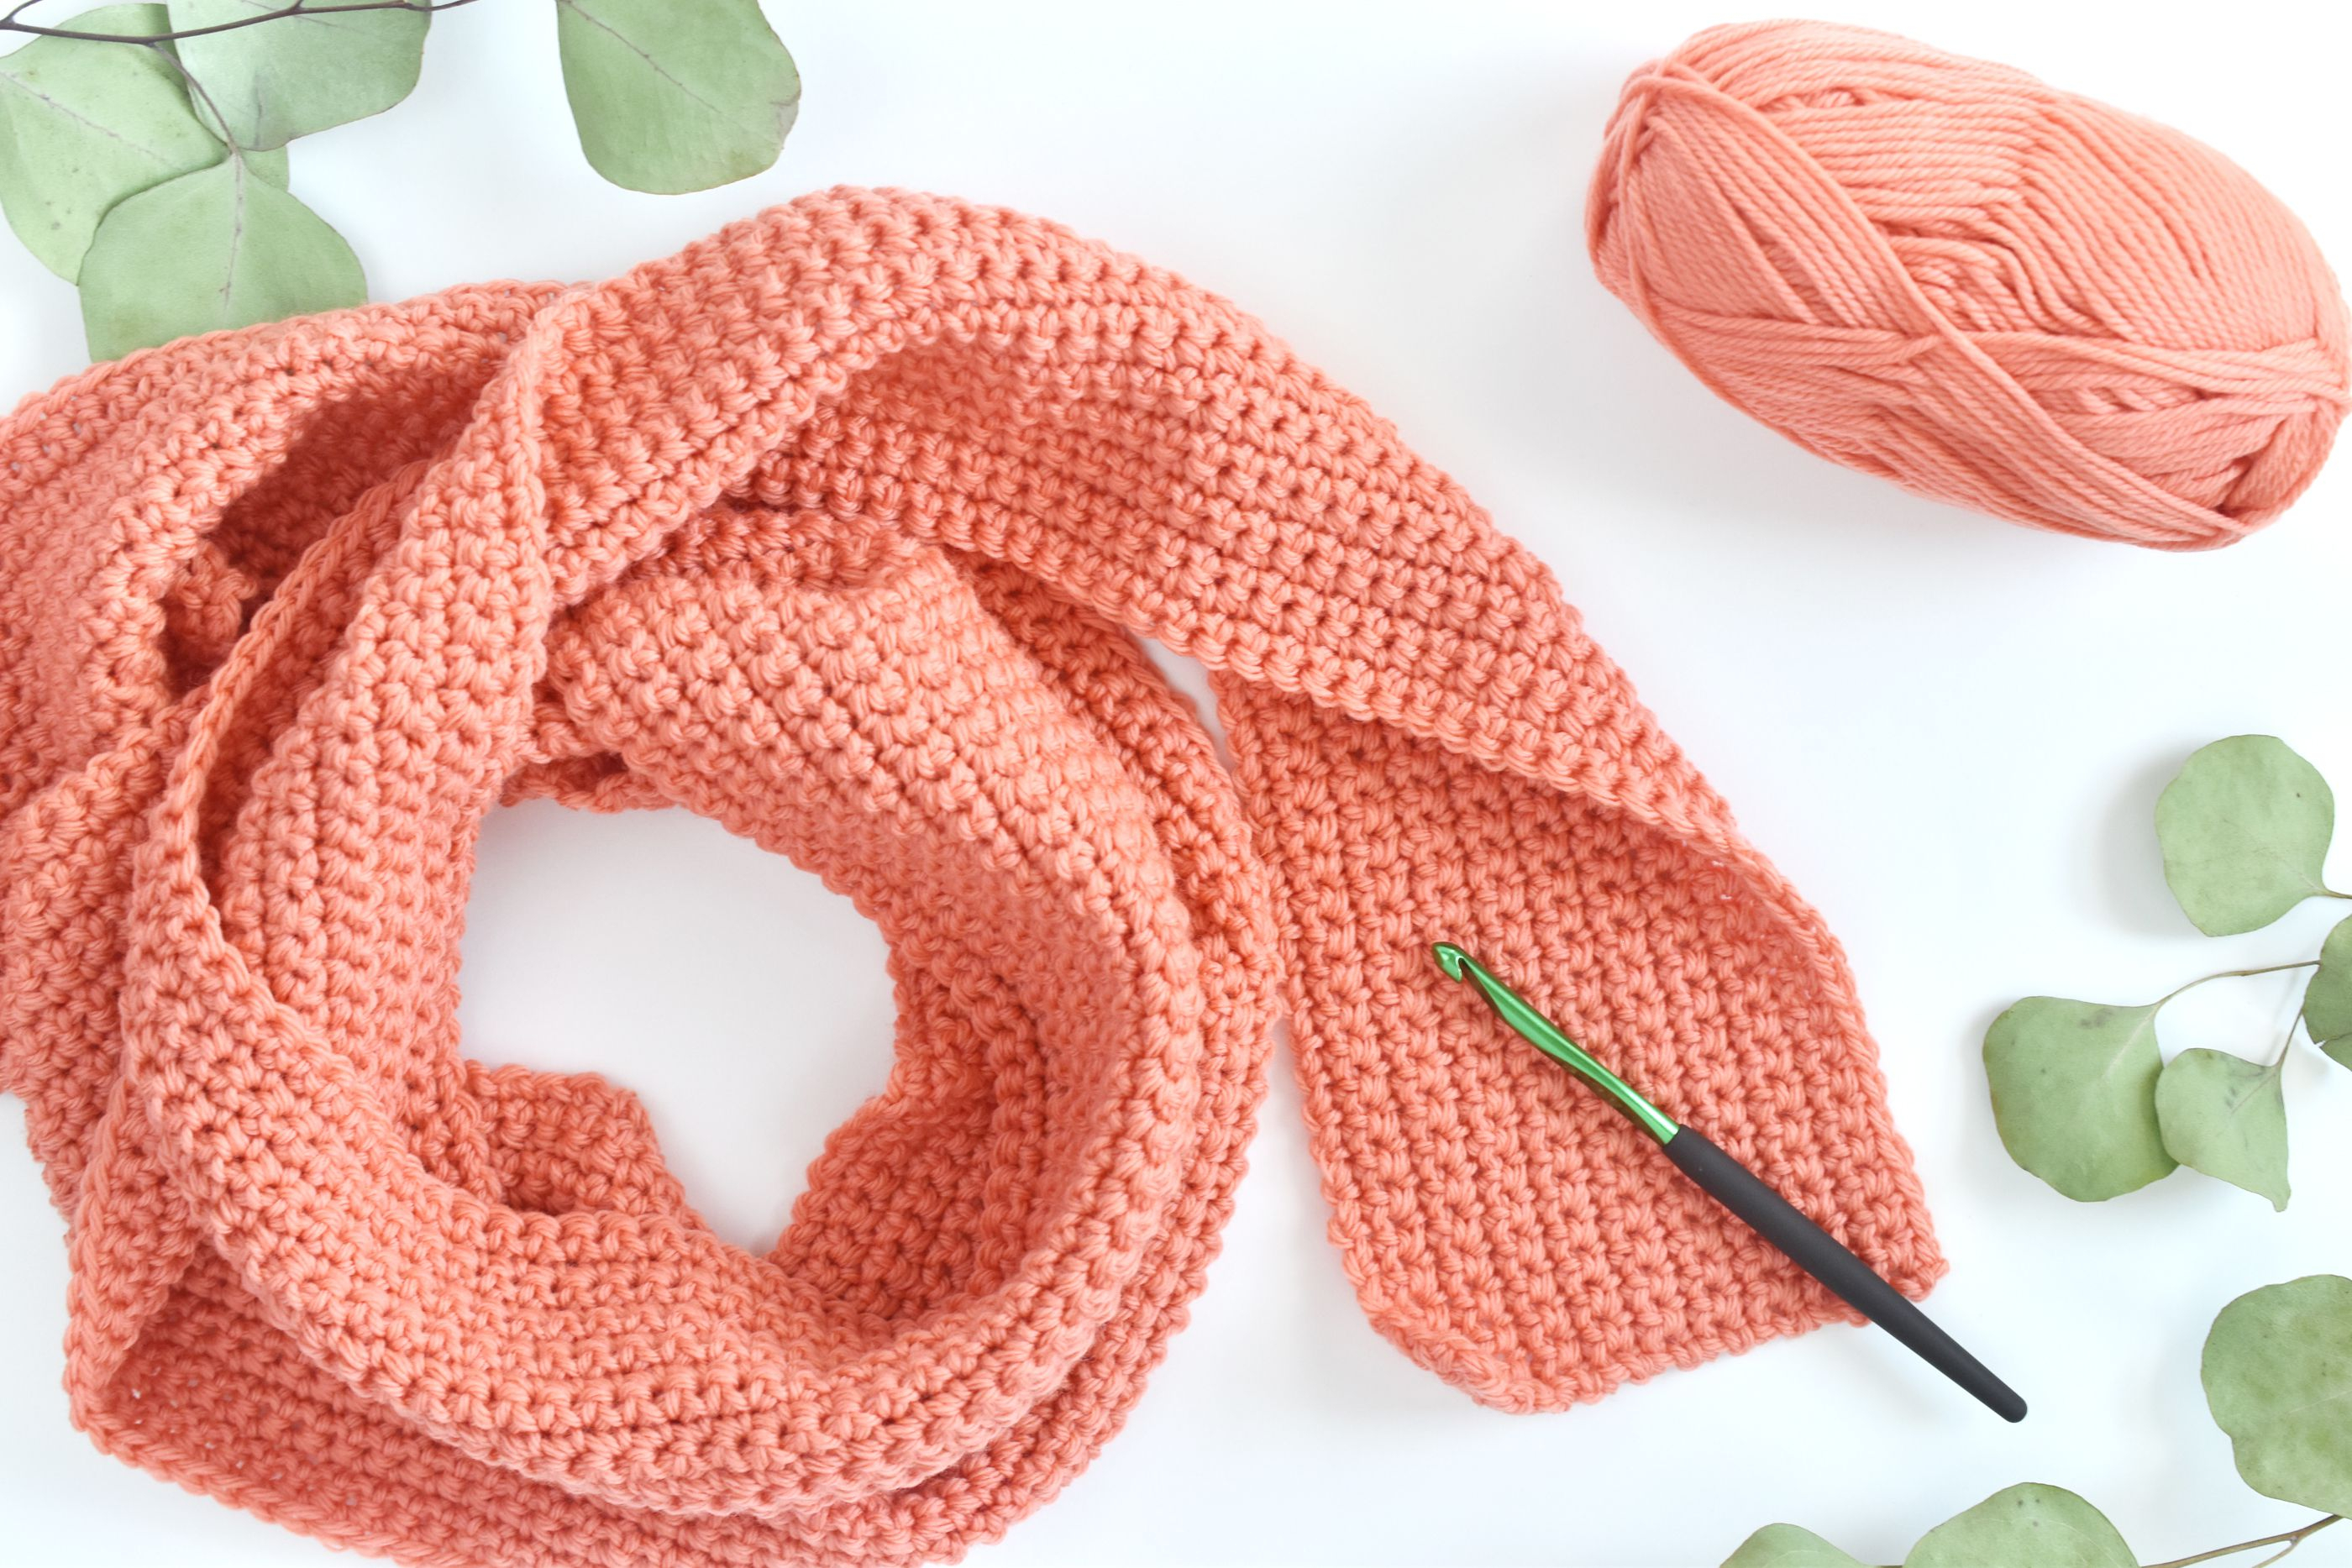 Vertical Striped Scarf Knitting Pattern How To Crochet A Scarf For Beginners